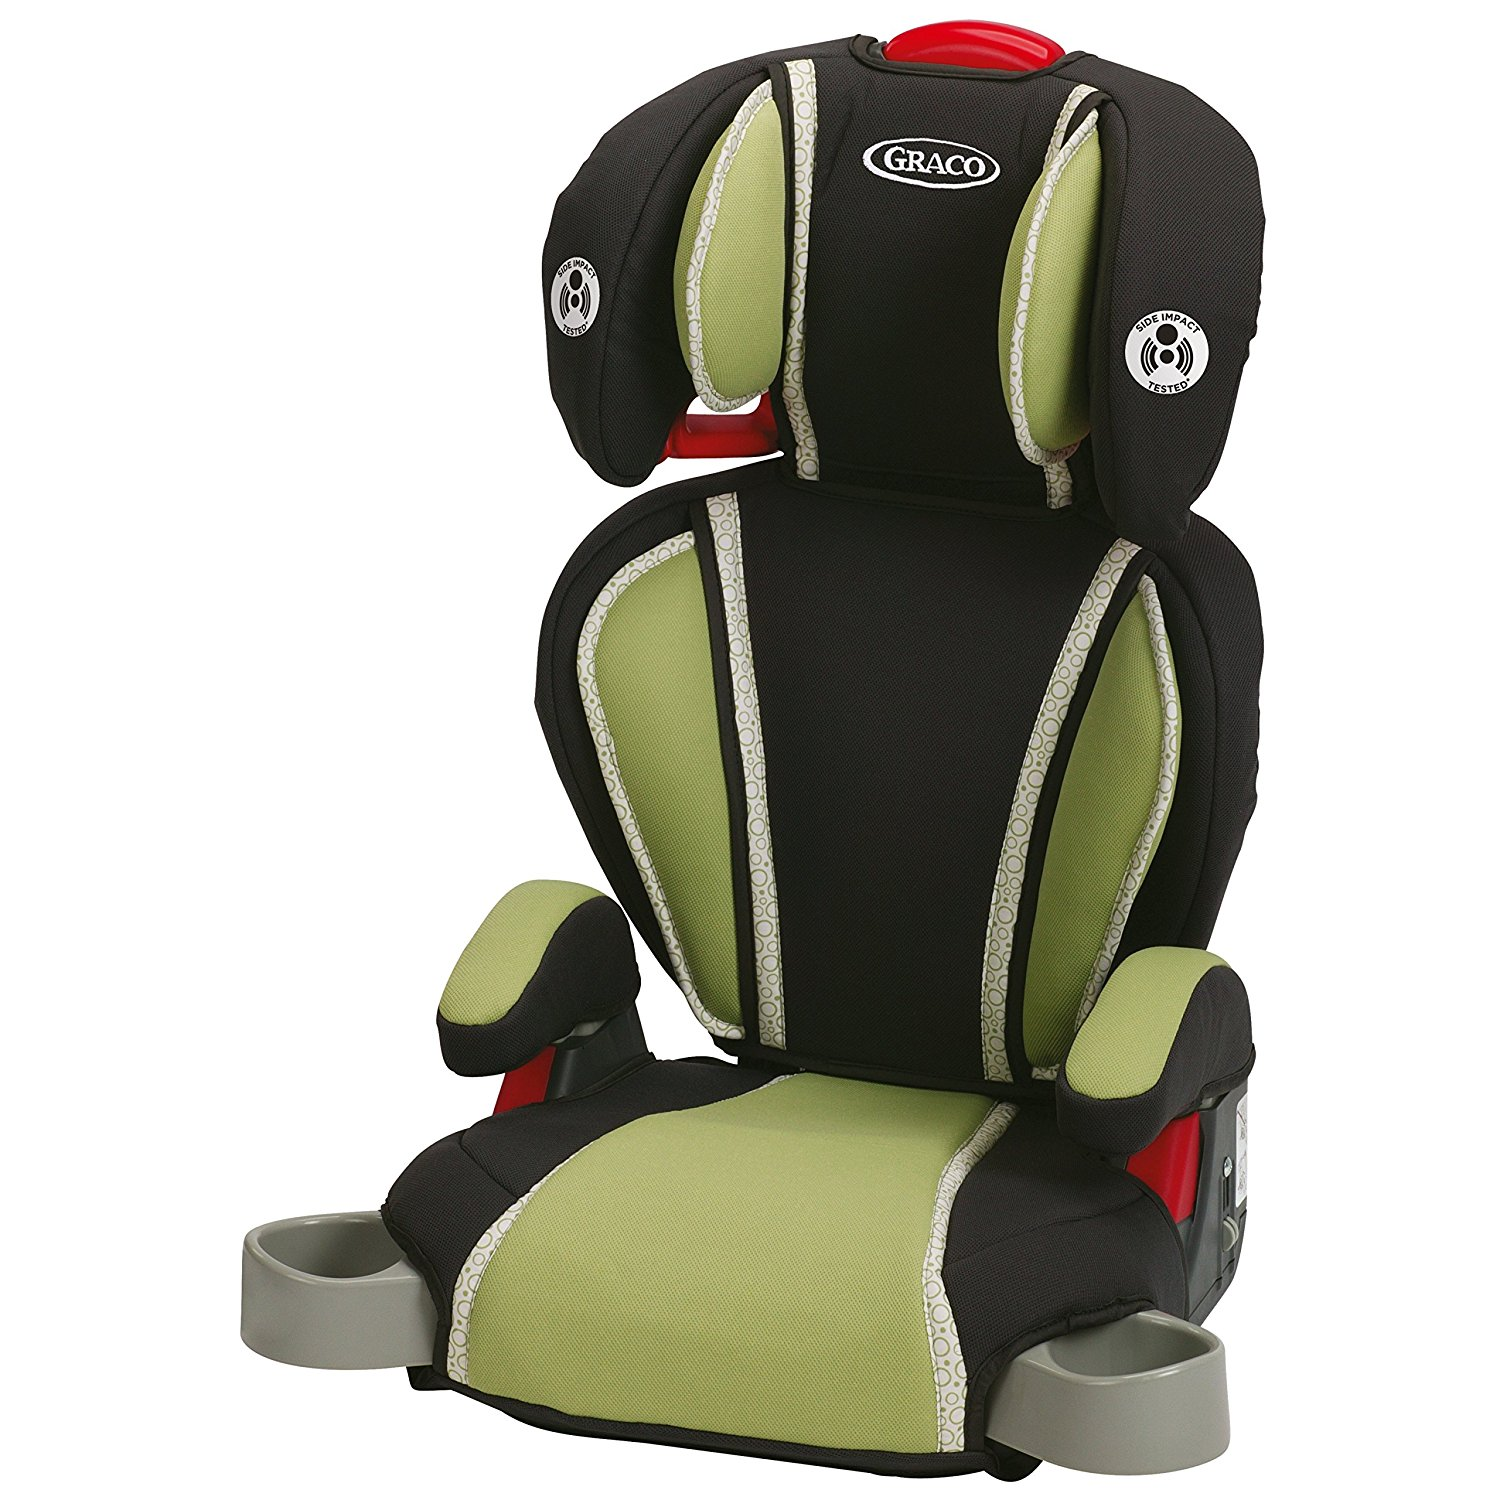 graco highback turbobooster car seat, high back booster seat, best high back booster seat, booster seat for cars, best booster seat for cars, child safety seat